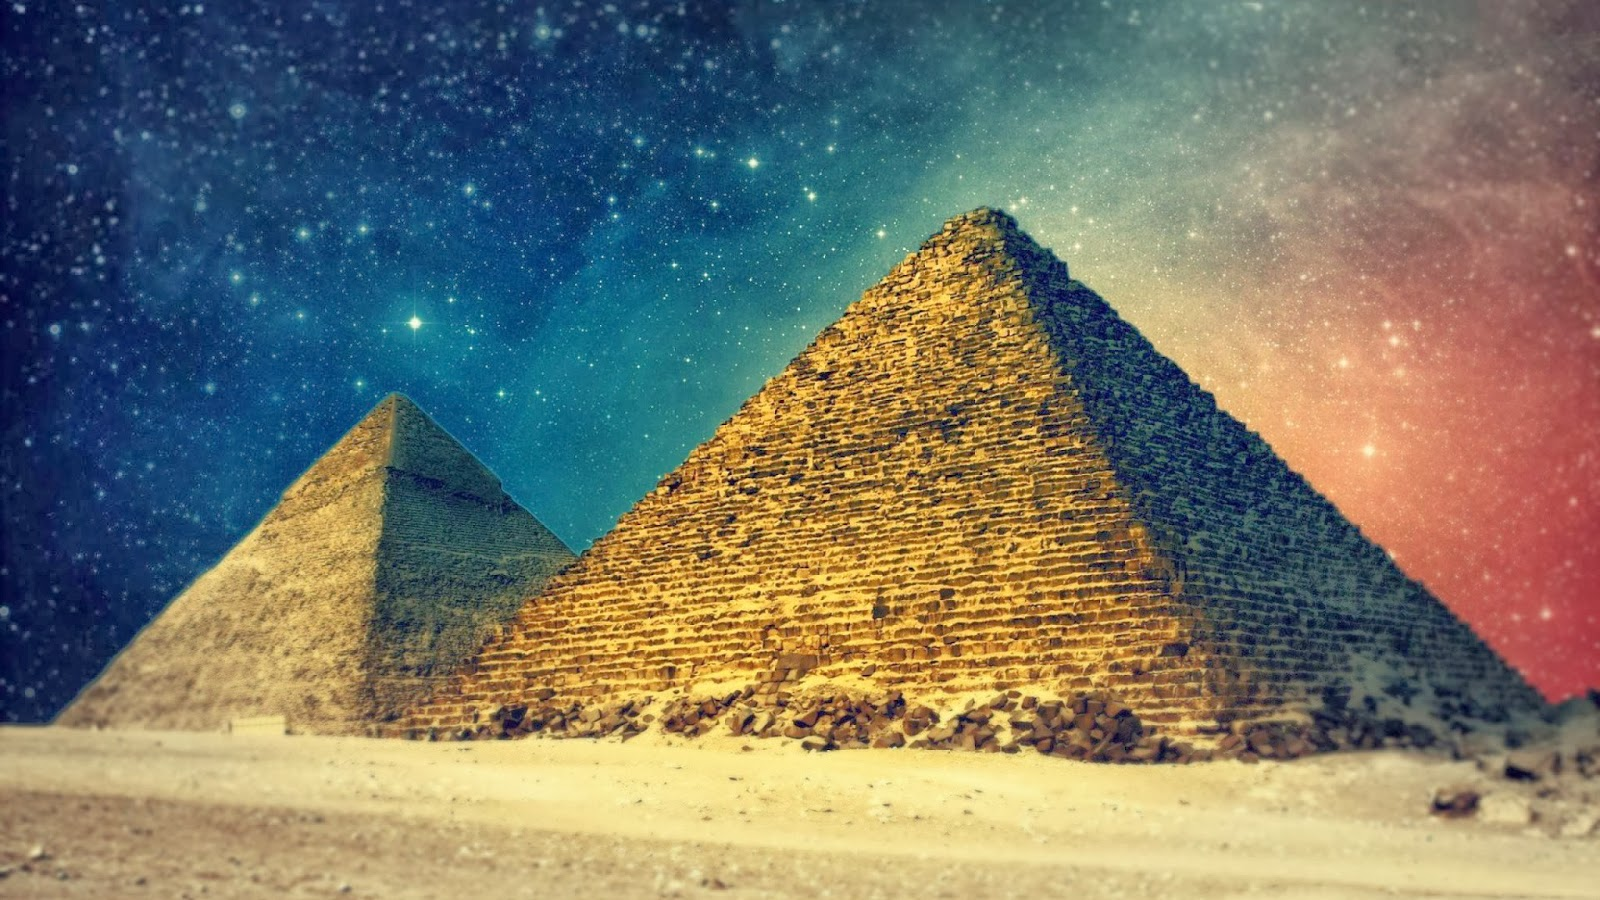 Pyramid Backgrounds on Wallpapers Vista